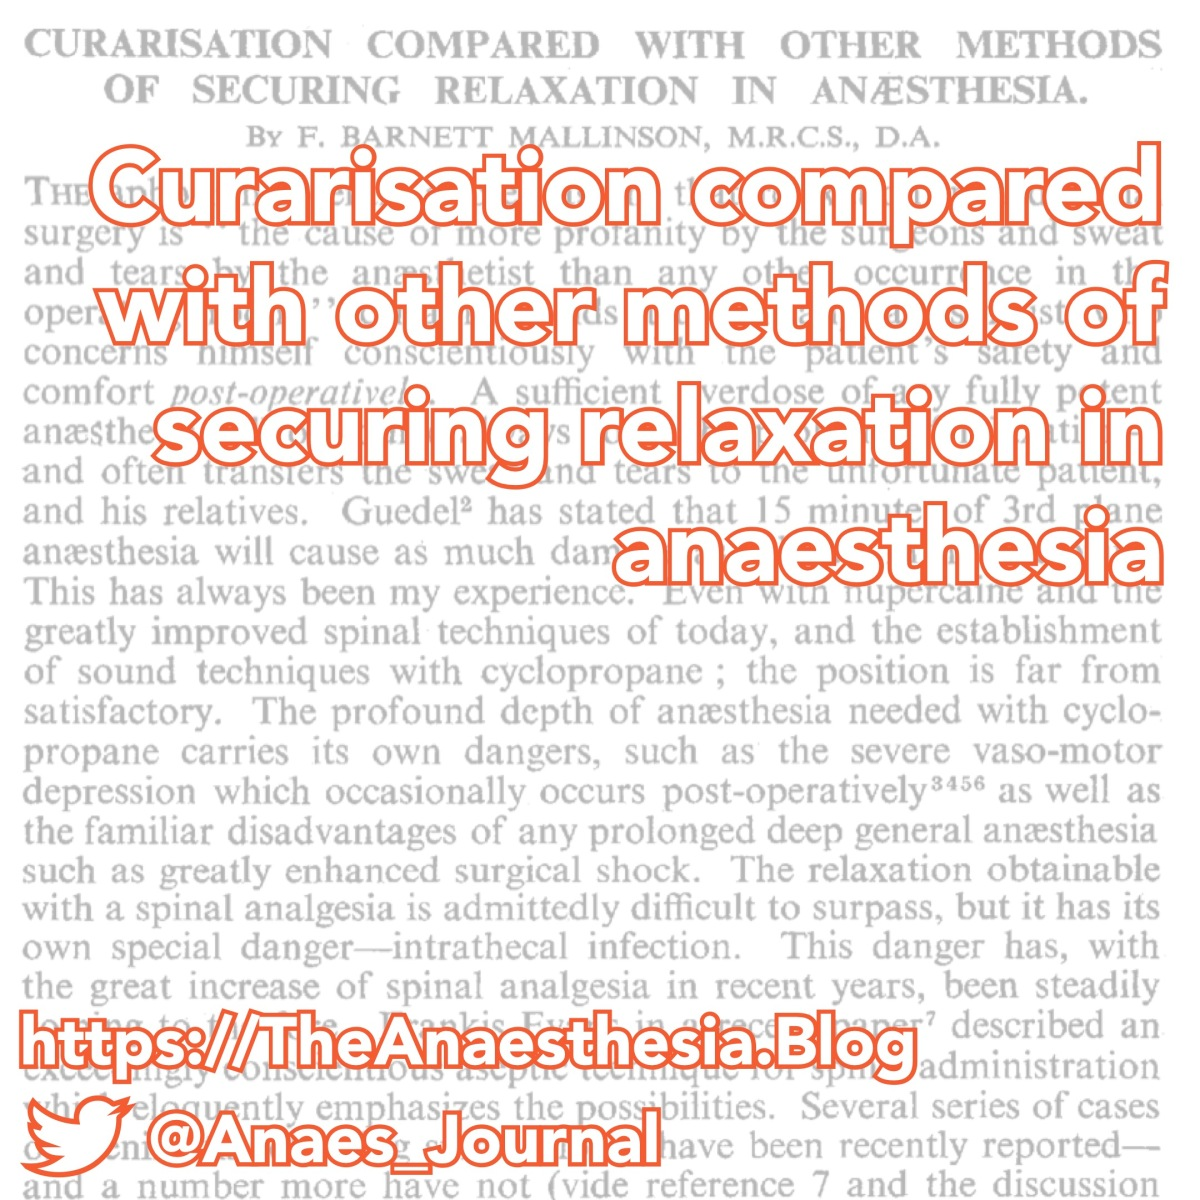 Curarisation compared with other methods of securing relaxation in anaesthesia